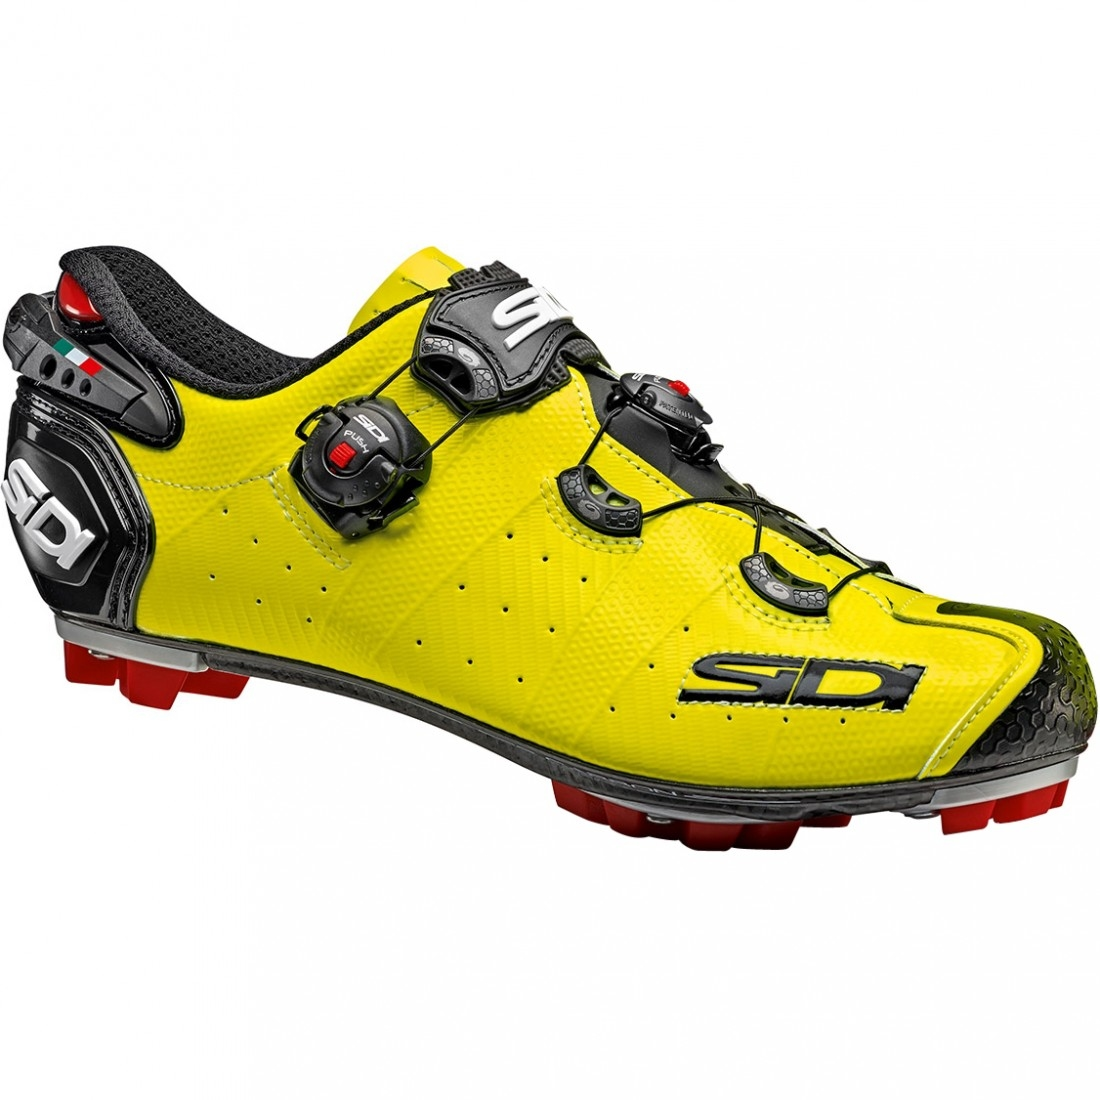 SIDI Drako Carbon SRS MTB Cycling Shoes Yellow Fluo//Black